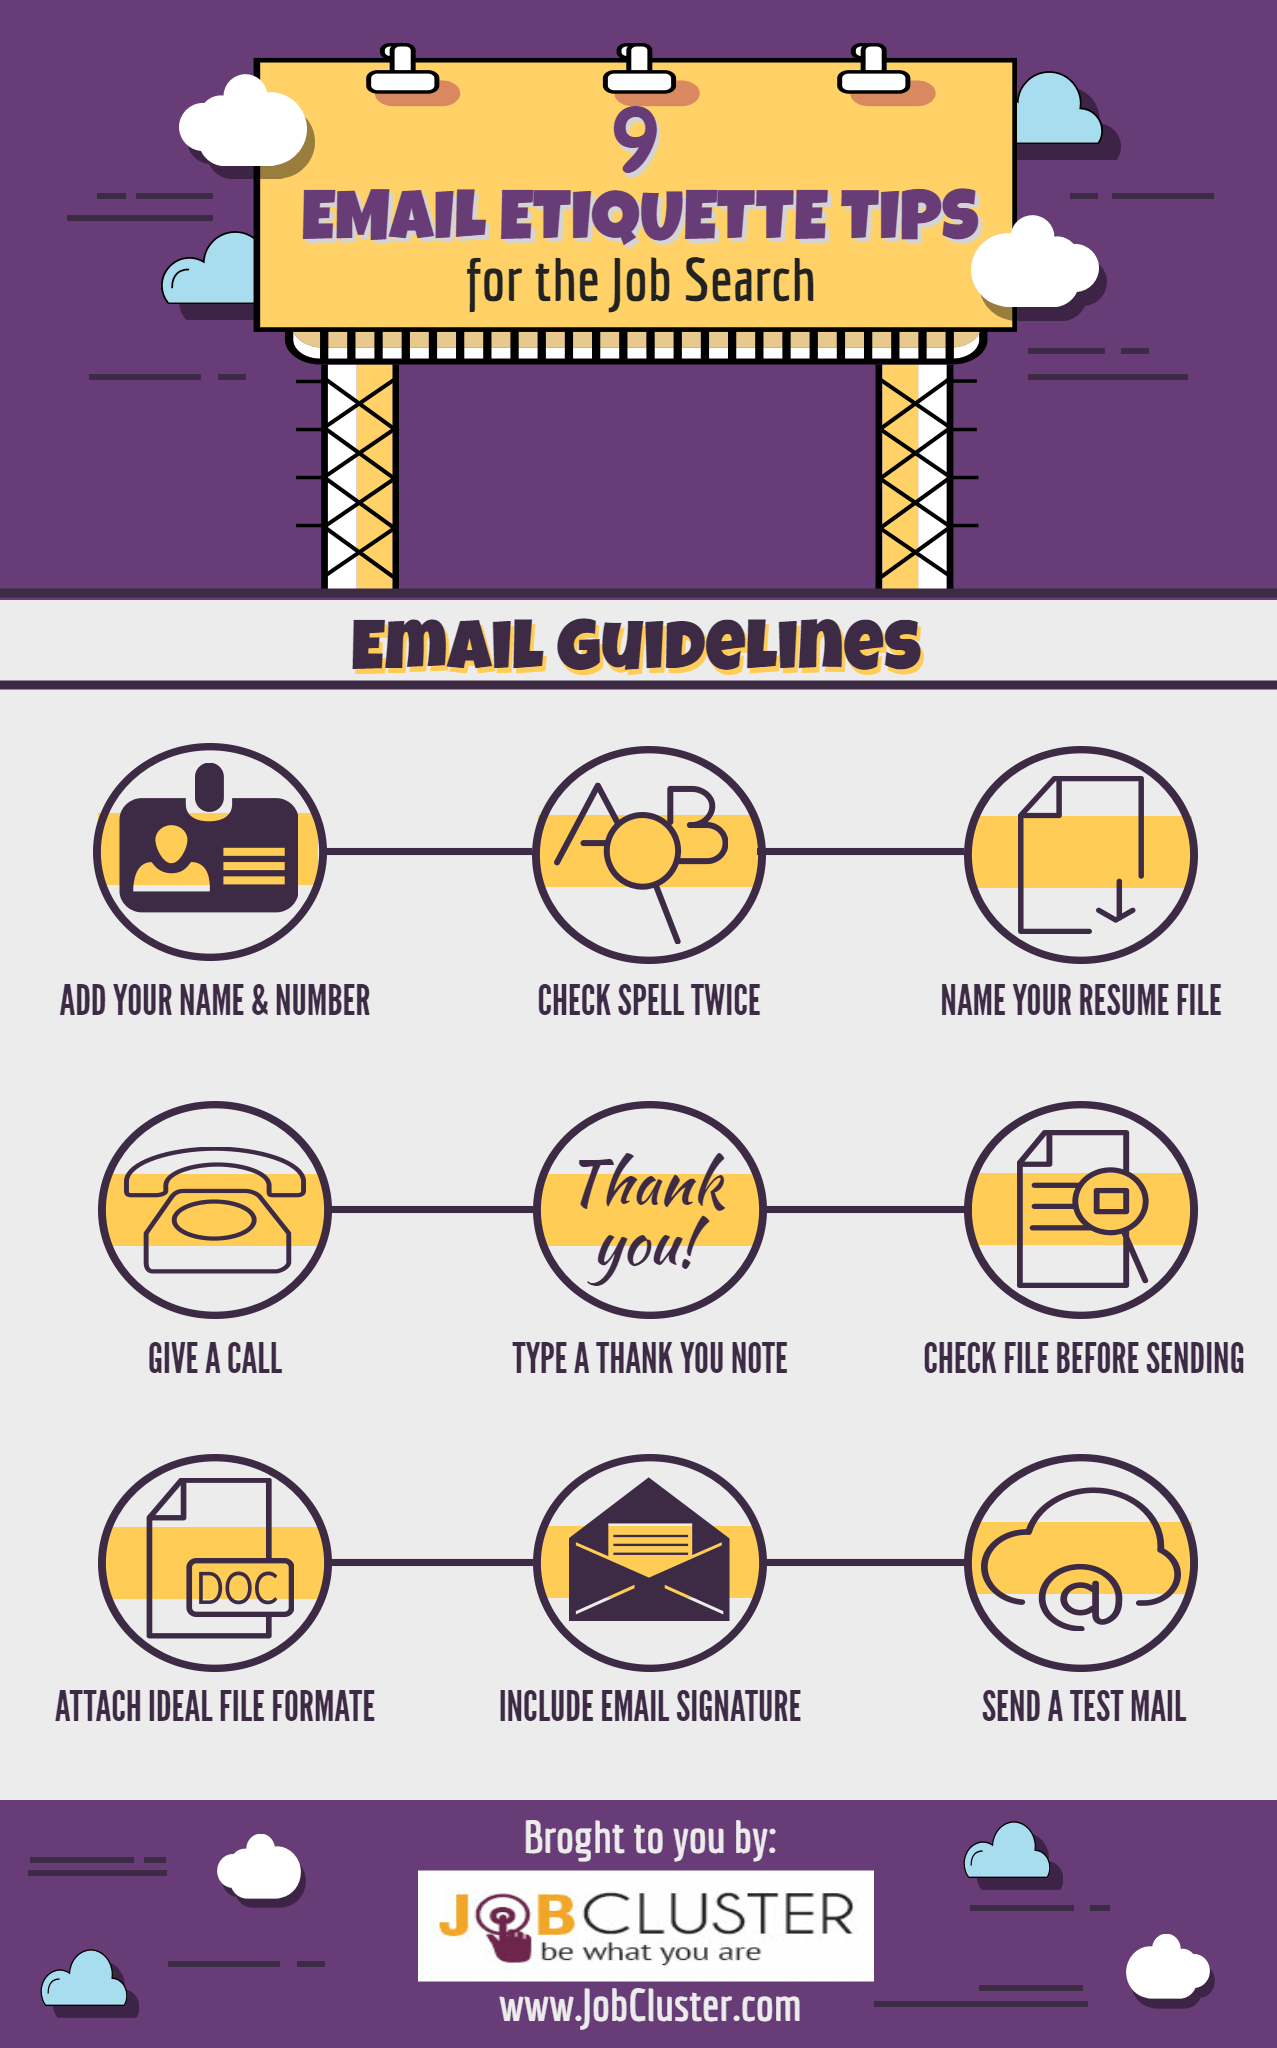 Email Etiquette Tips for Job Seekers- Infographic